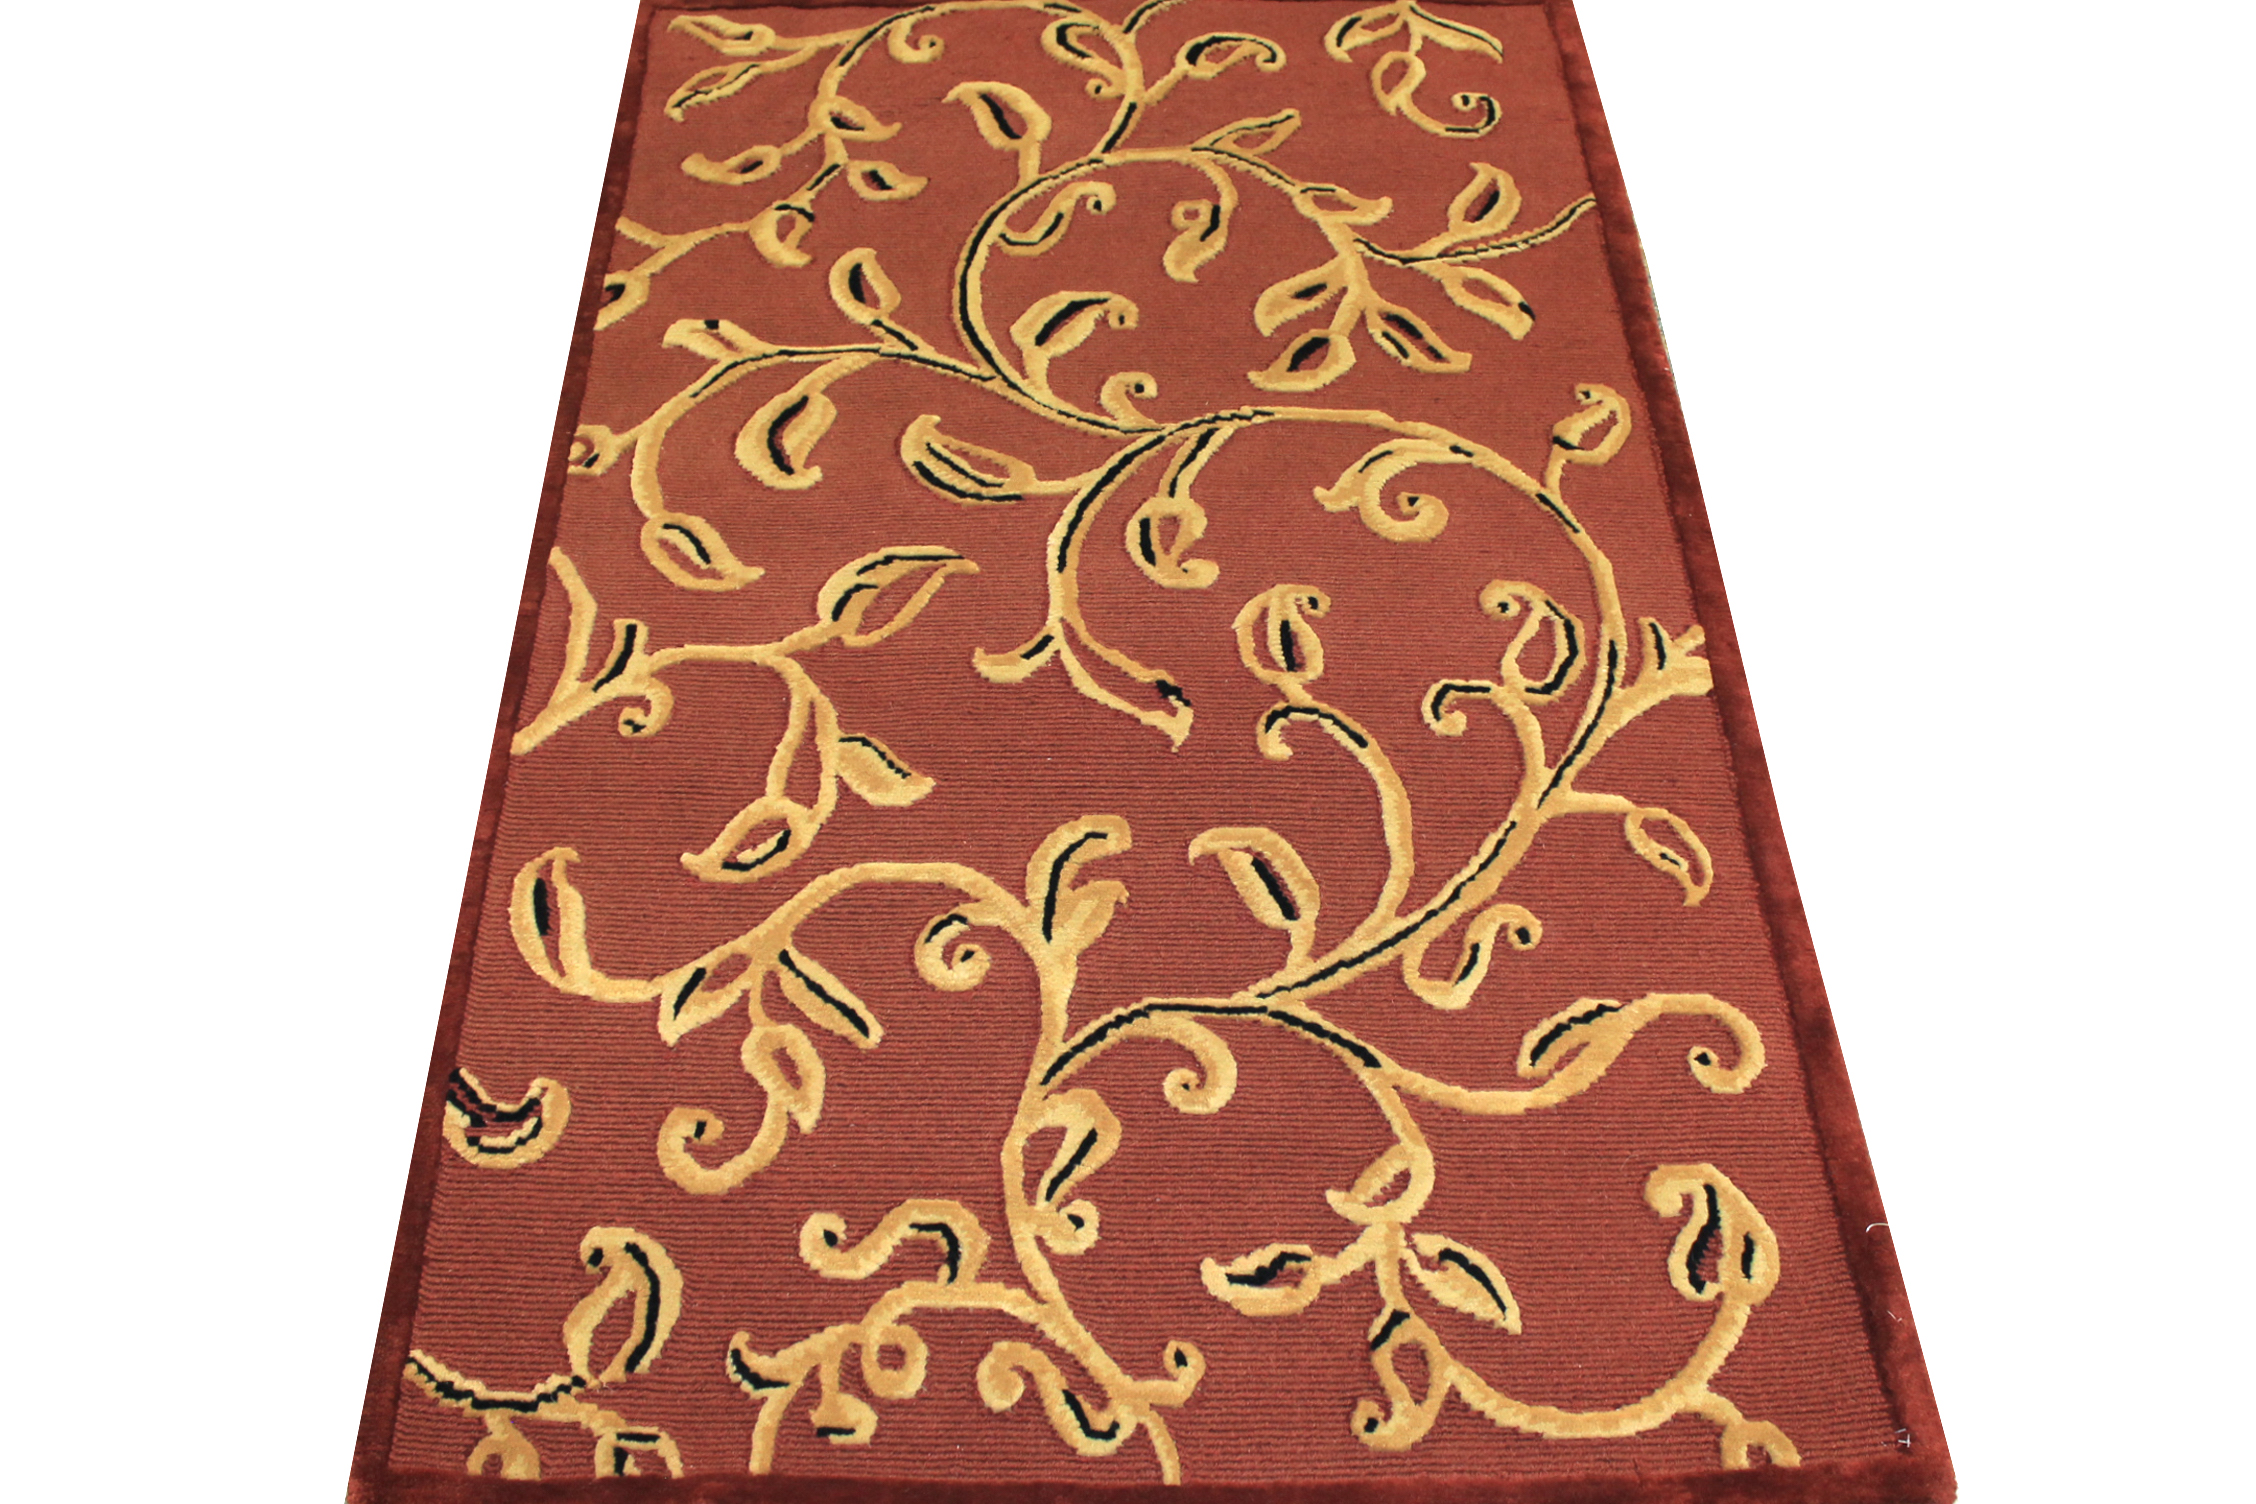 4x6 Contemporary Hand Knotted Wool Area Rug - MR7528